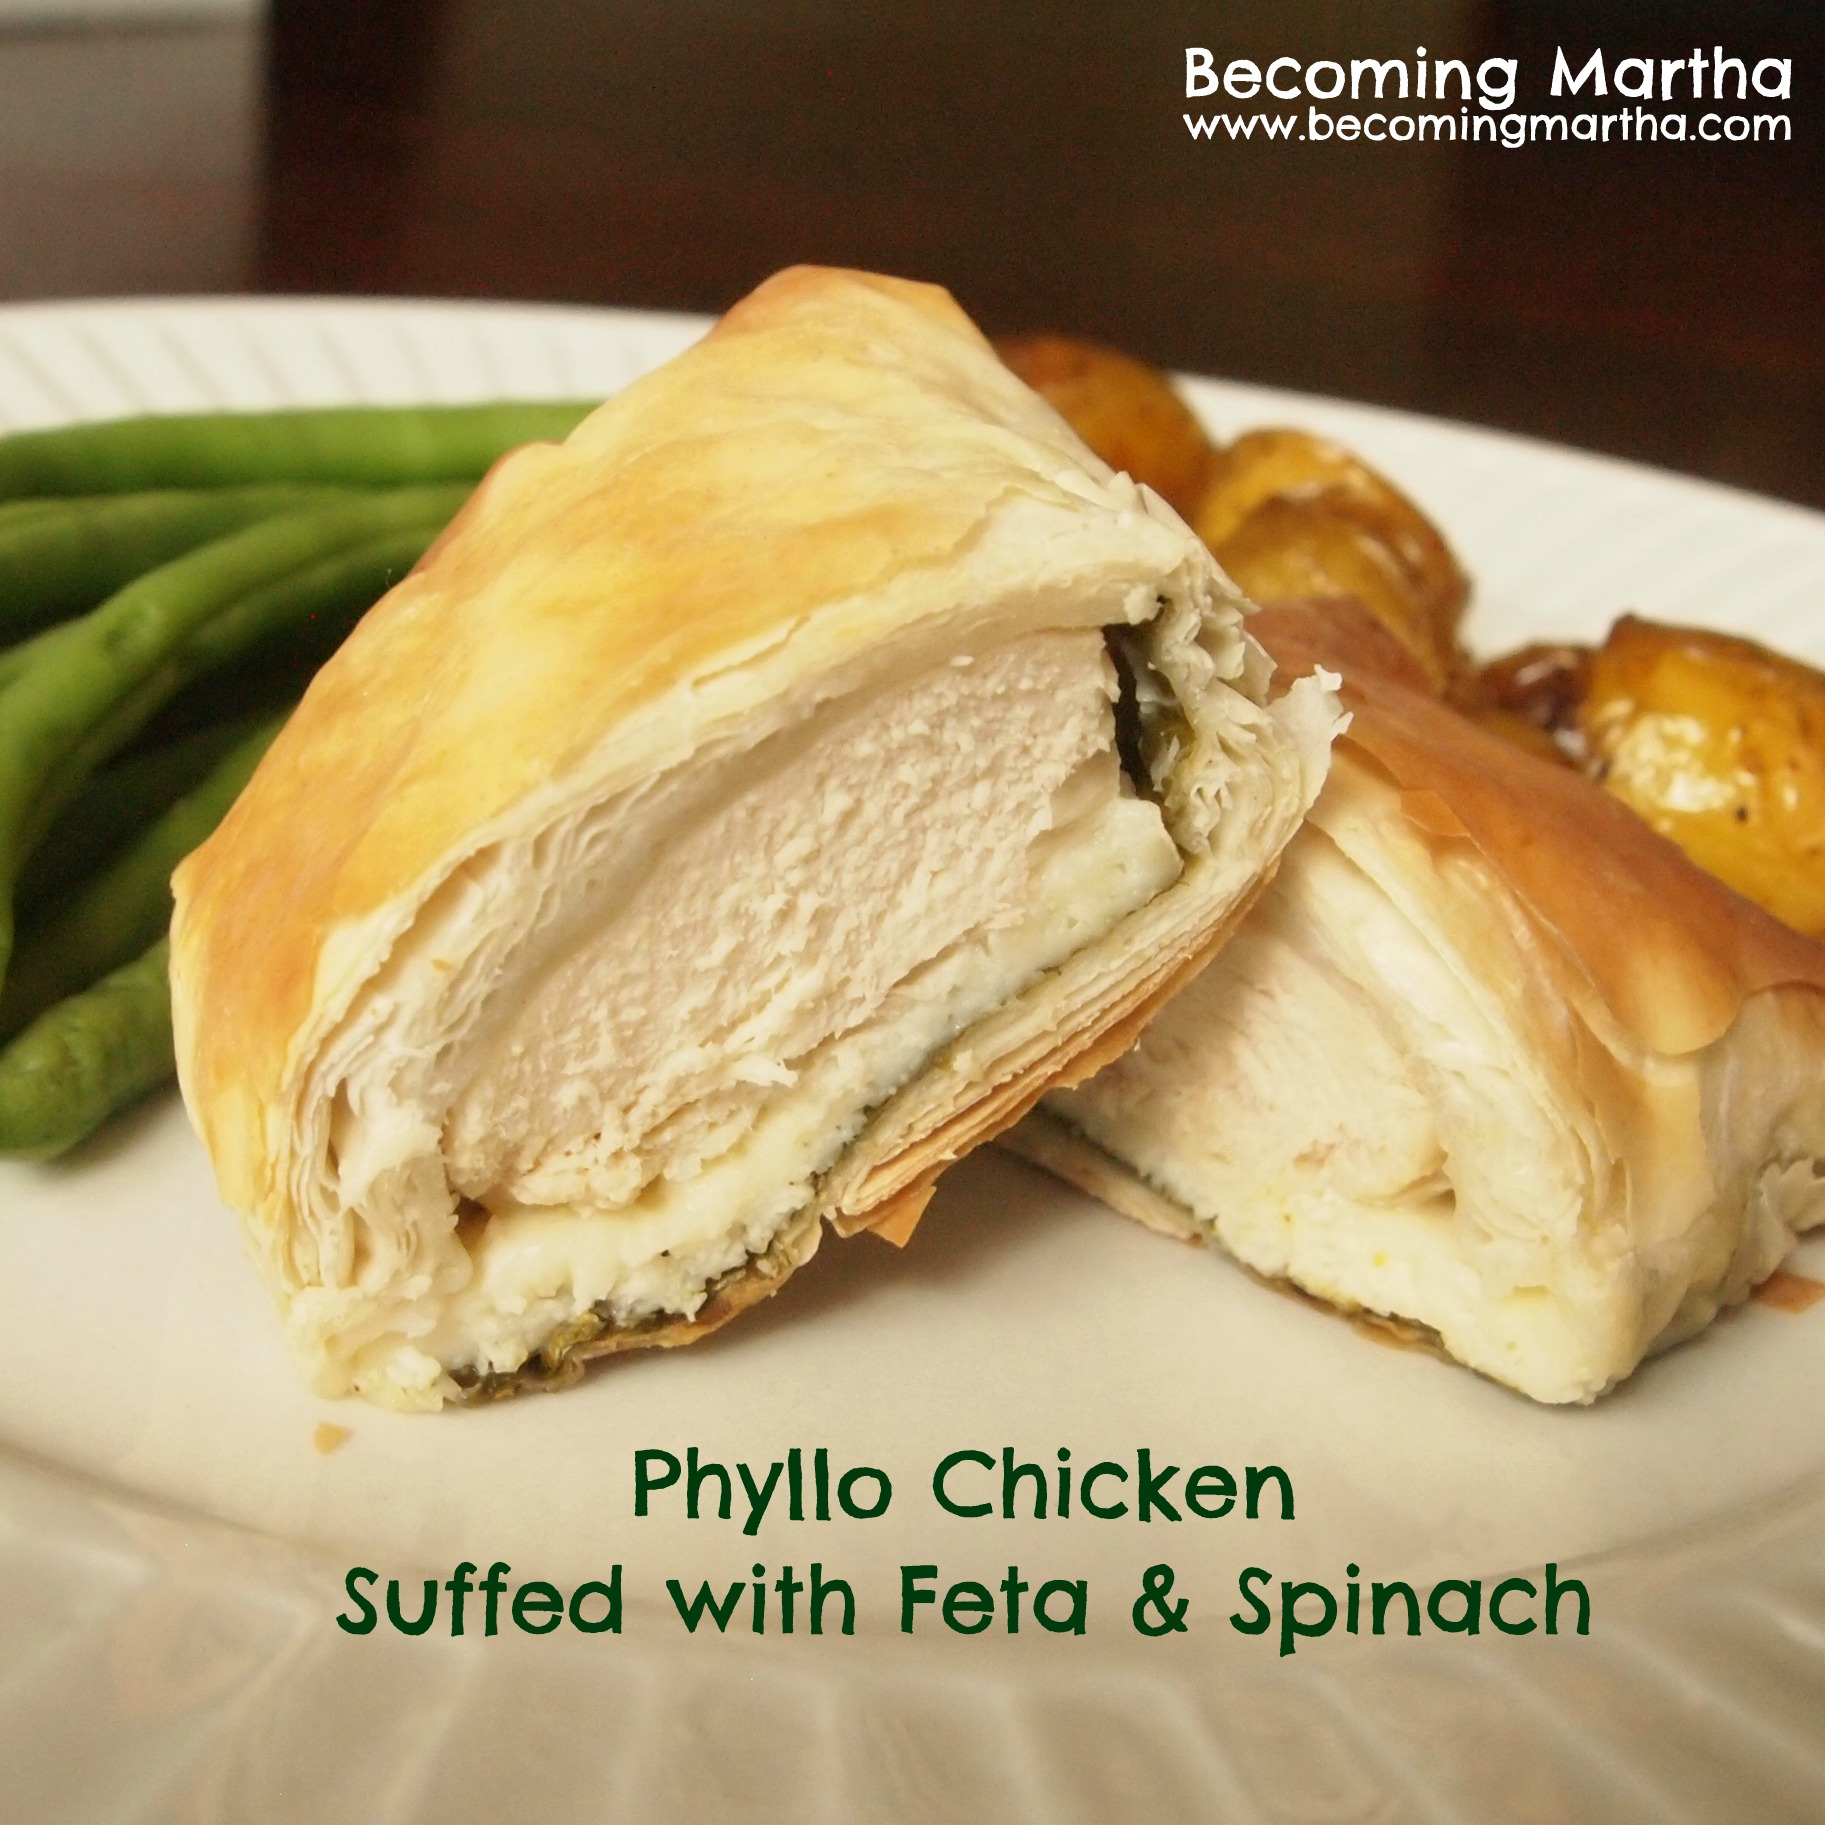 Phyllo Chicken Stuffed with Feta & Spinach